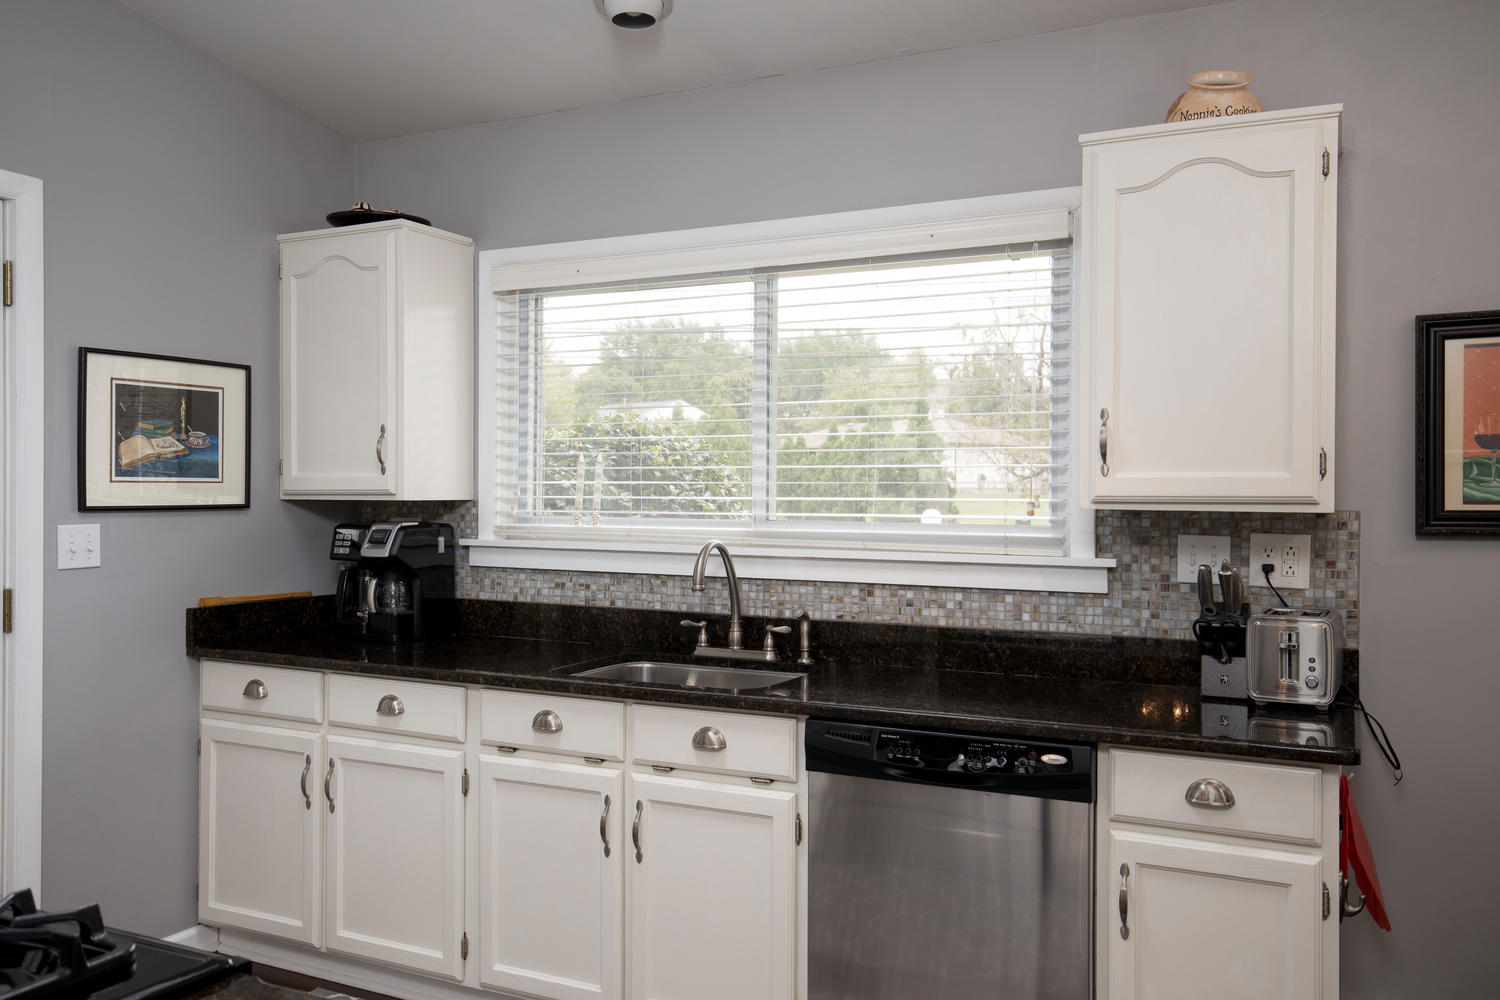 5258 Armor Duells Rd Orchard-large-009-016-Kitchen-1500×1000-72dpi